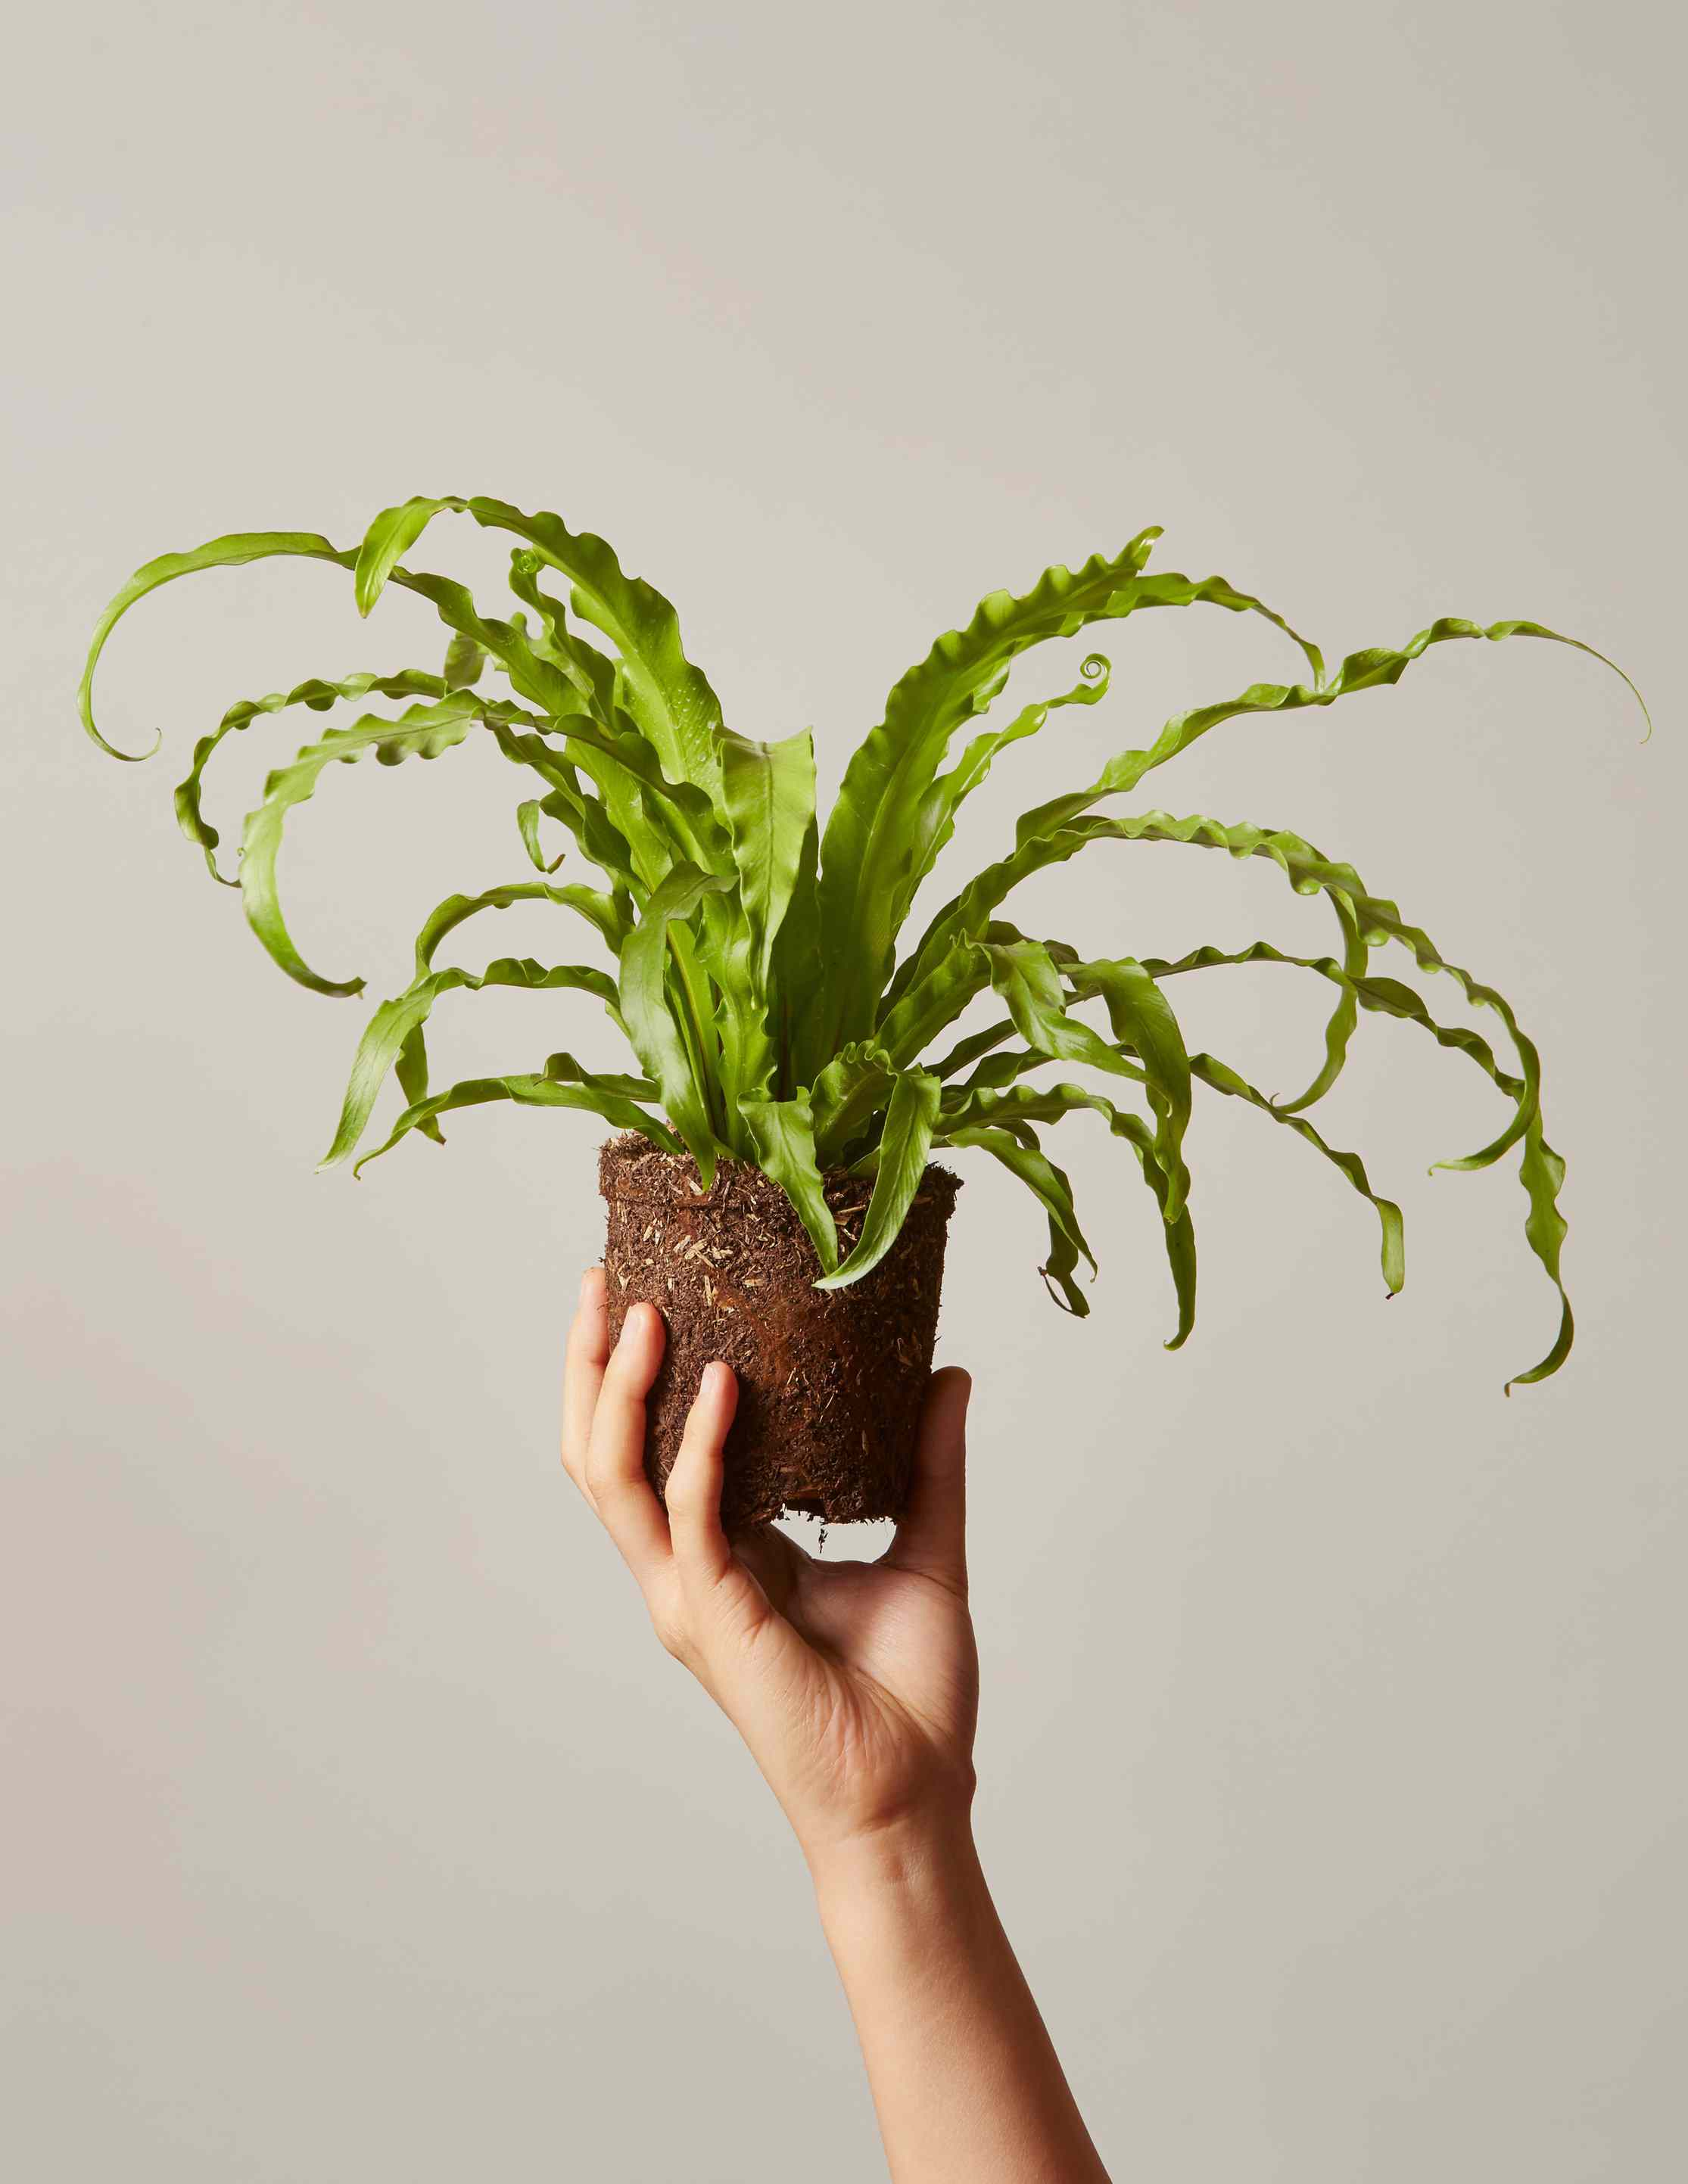 hand holding bare-root bird's nest fern with arching, wavy green leaves